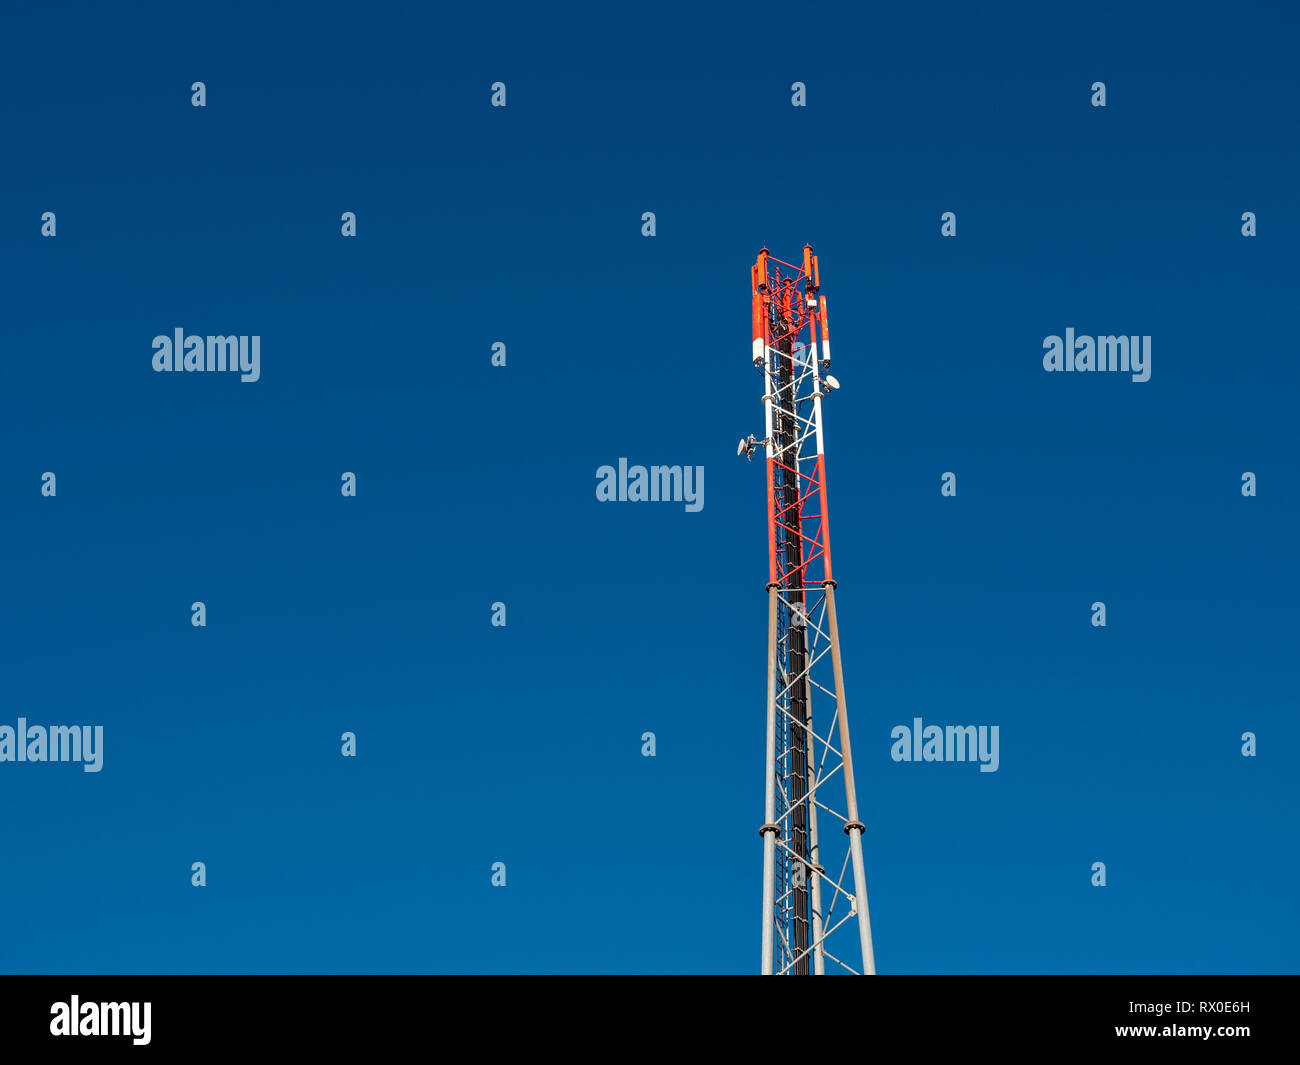 4G or GSM Antenna on a Red and White Mobile Telephone Mast against a Blue Sky - Stock Image